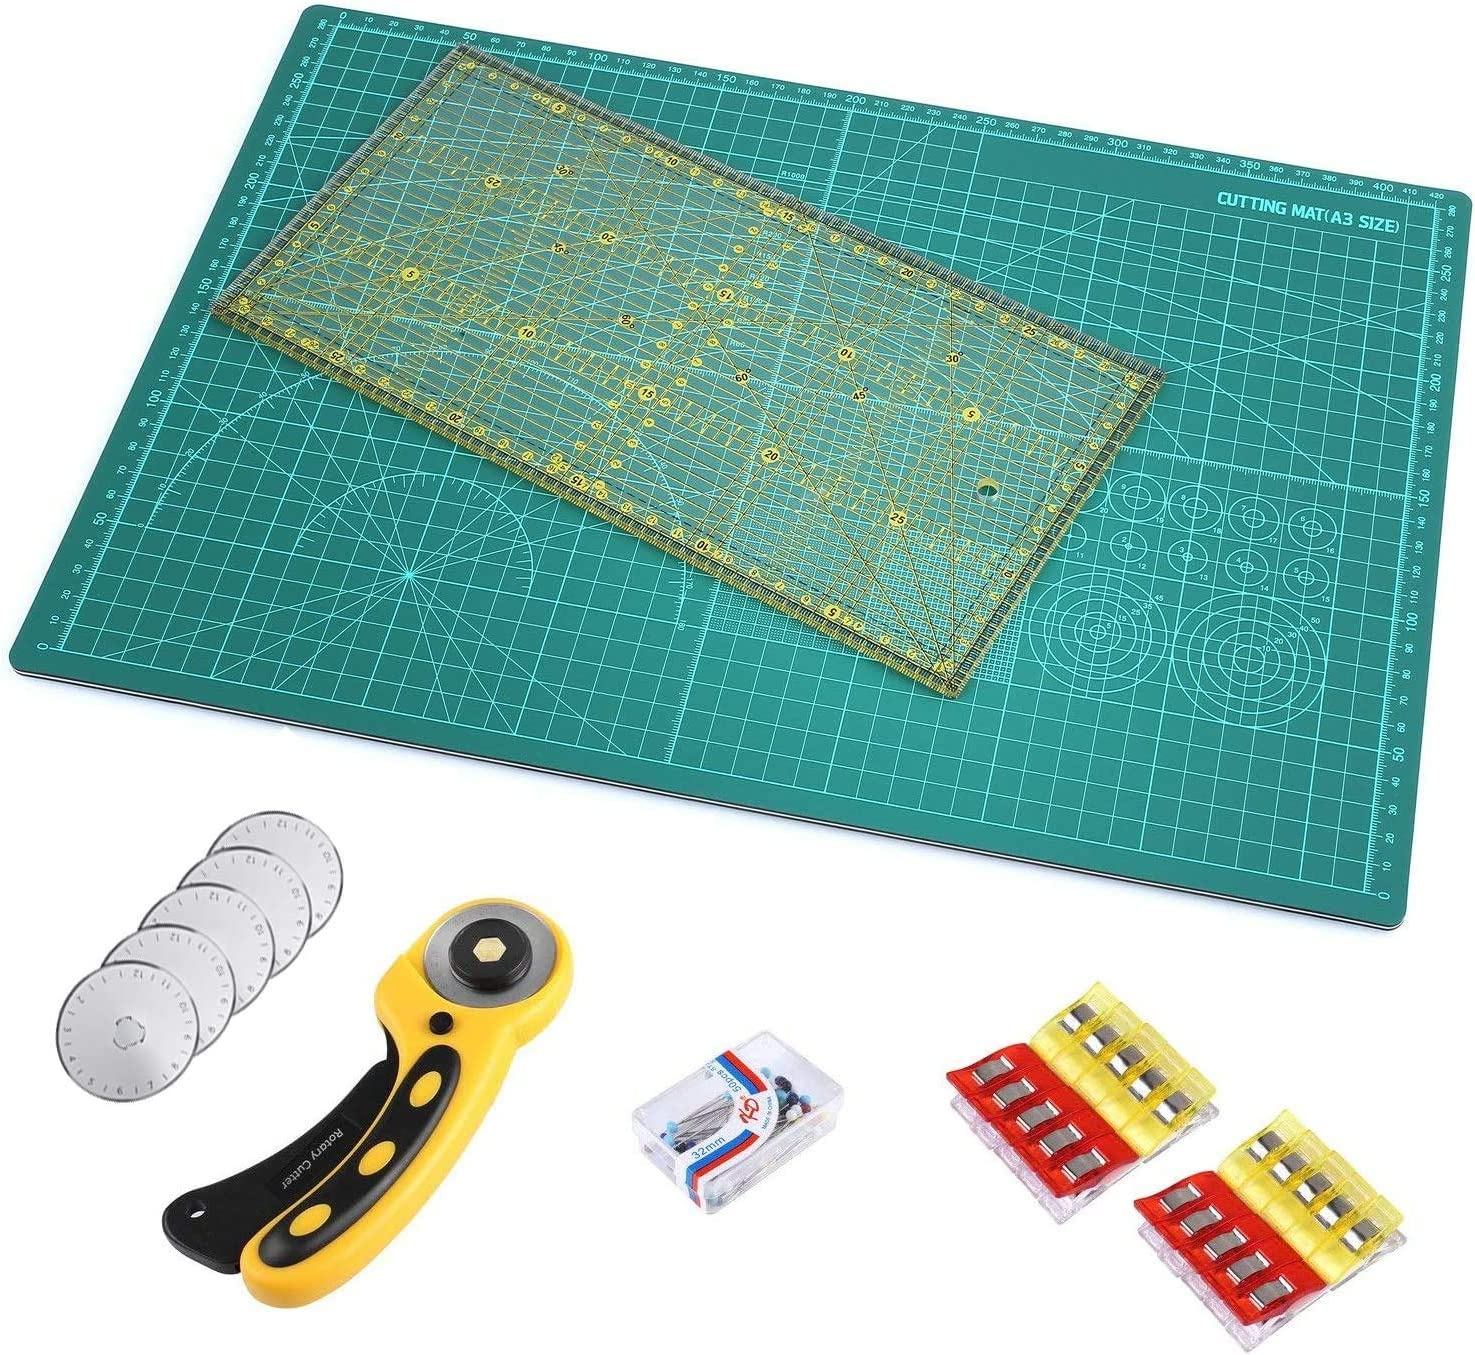 1x Patchwork Ruler Pins for Quilters Sewing Quilting Cutting Craft MVPOWER Professional A2 Cutting Mat Set with 1x Rotary Cutter 5X Replacement Blades 1x A2 Cutting mat Cloth Clip